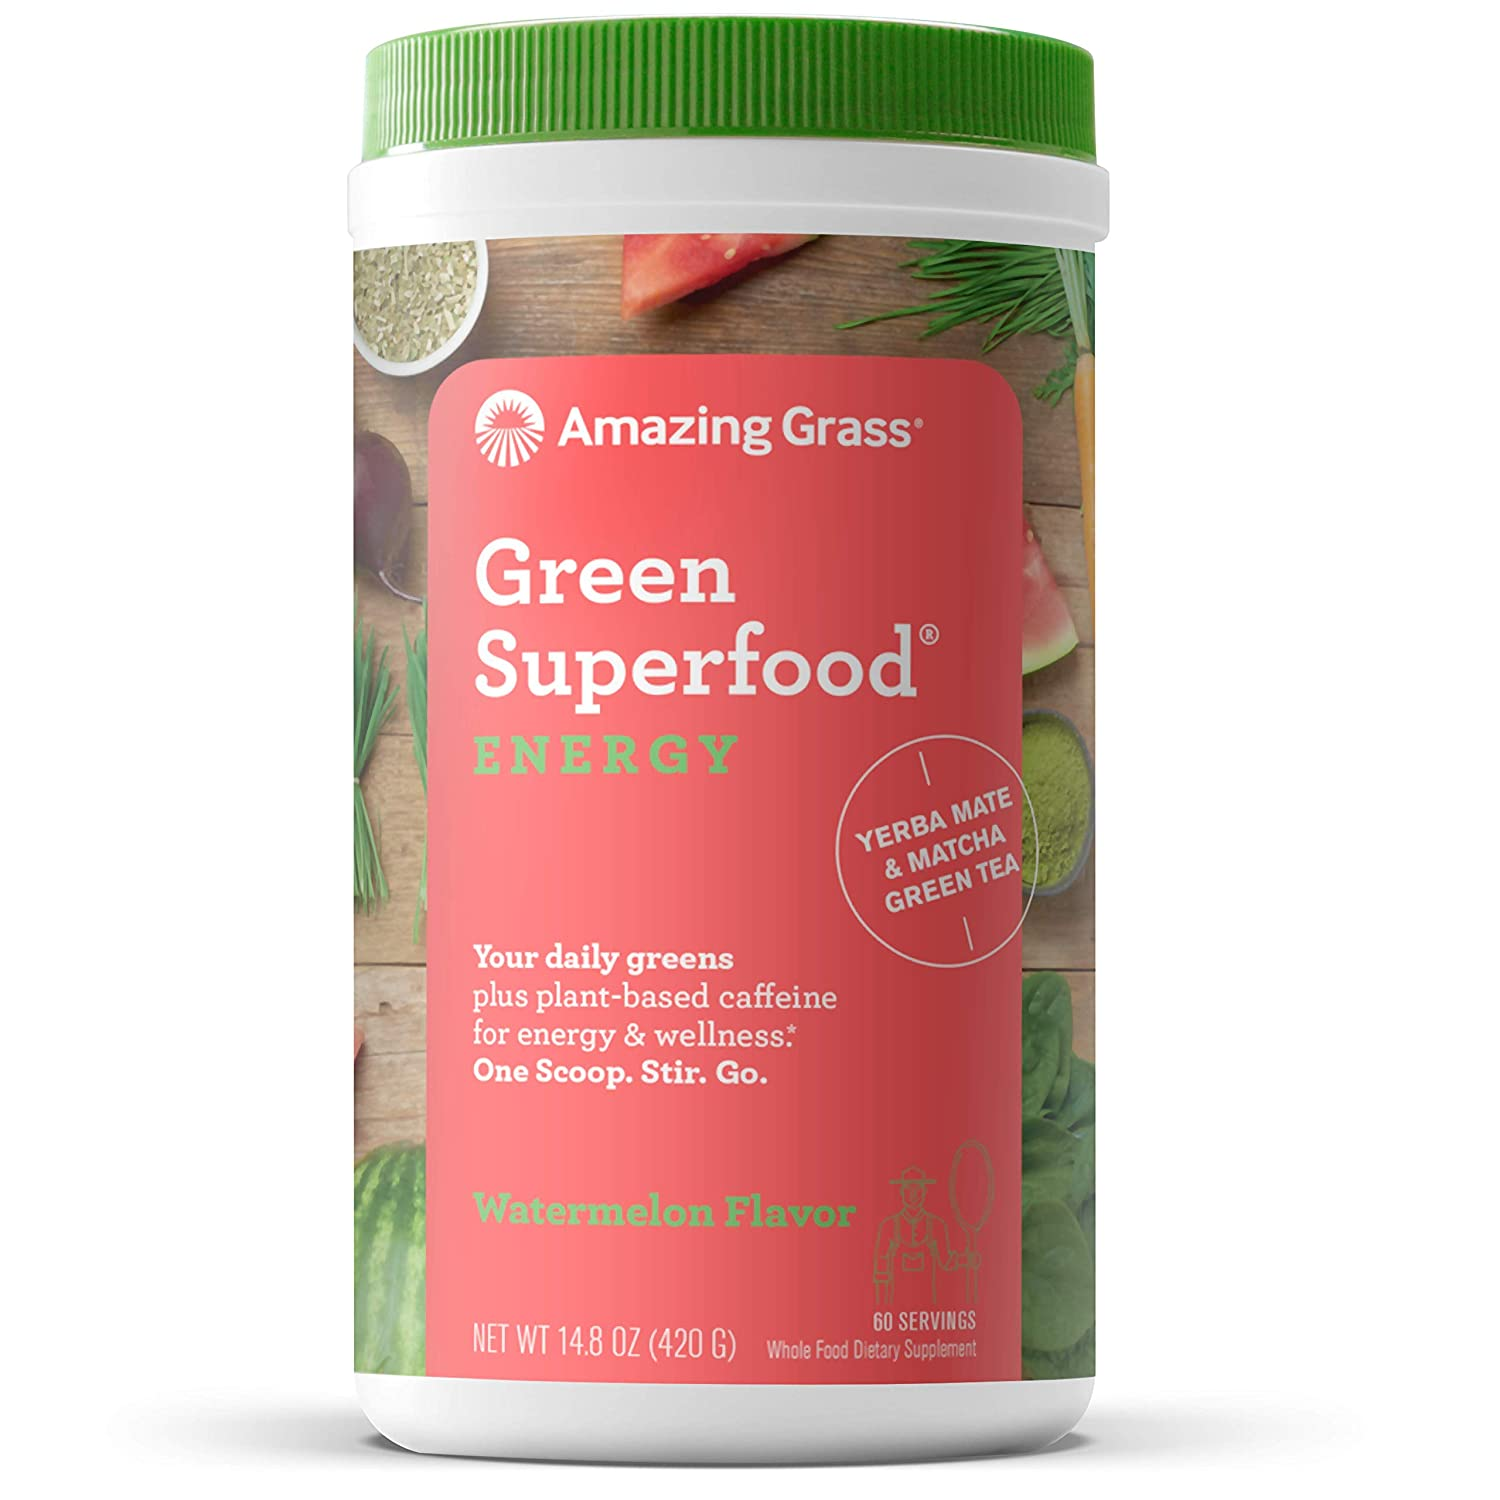 Amazing Grass Green Superfood Energy Super Greens Powder & Plant Based  Caffeine with Matcha Green Tea & Beet Root Powder, Watermelon, 8 Servings